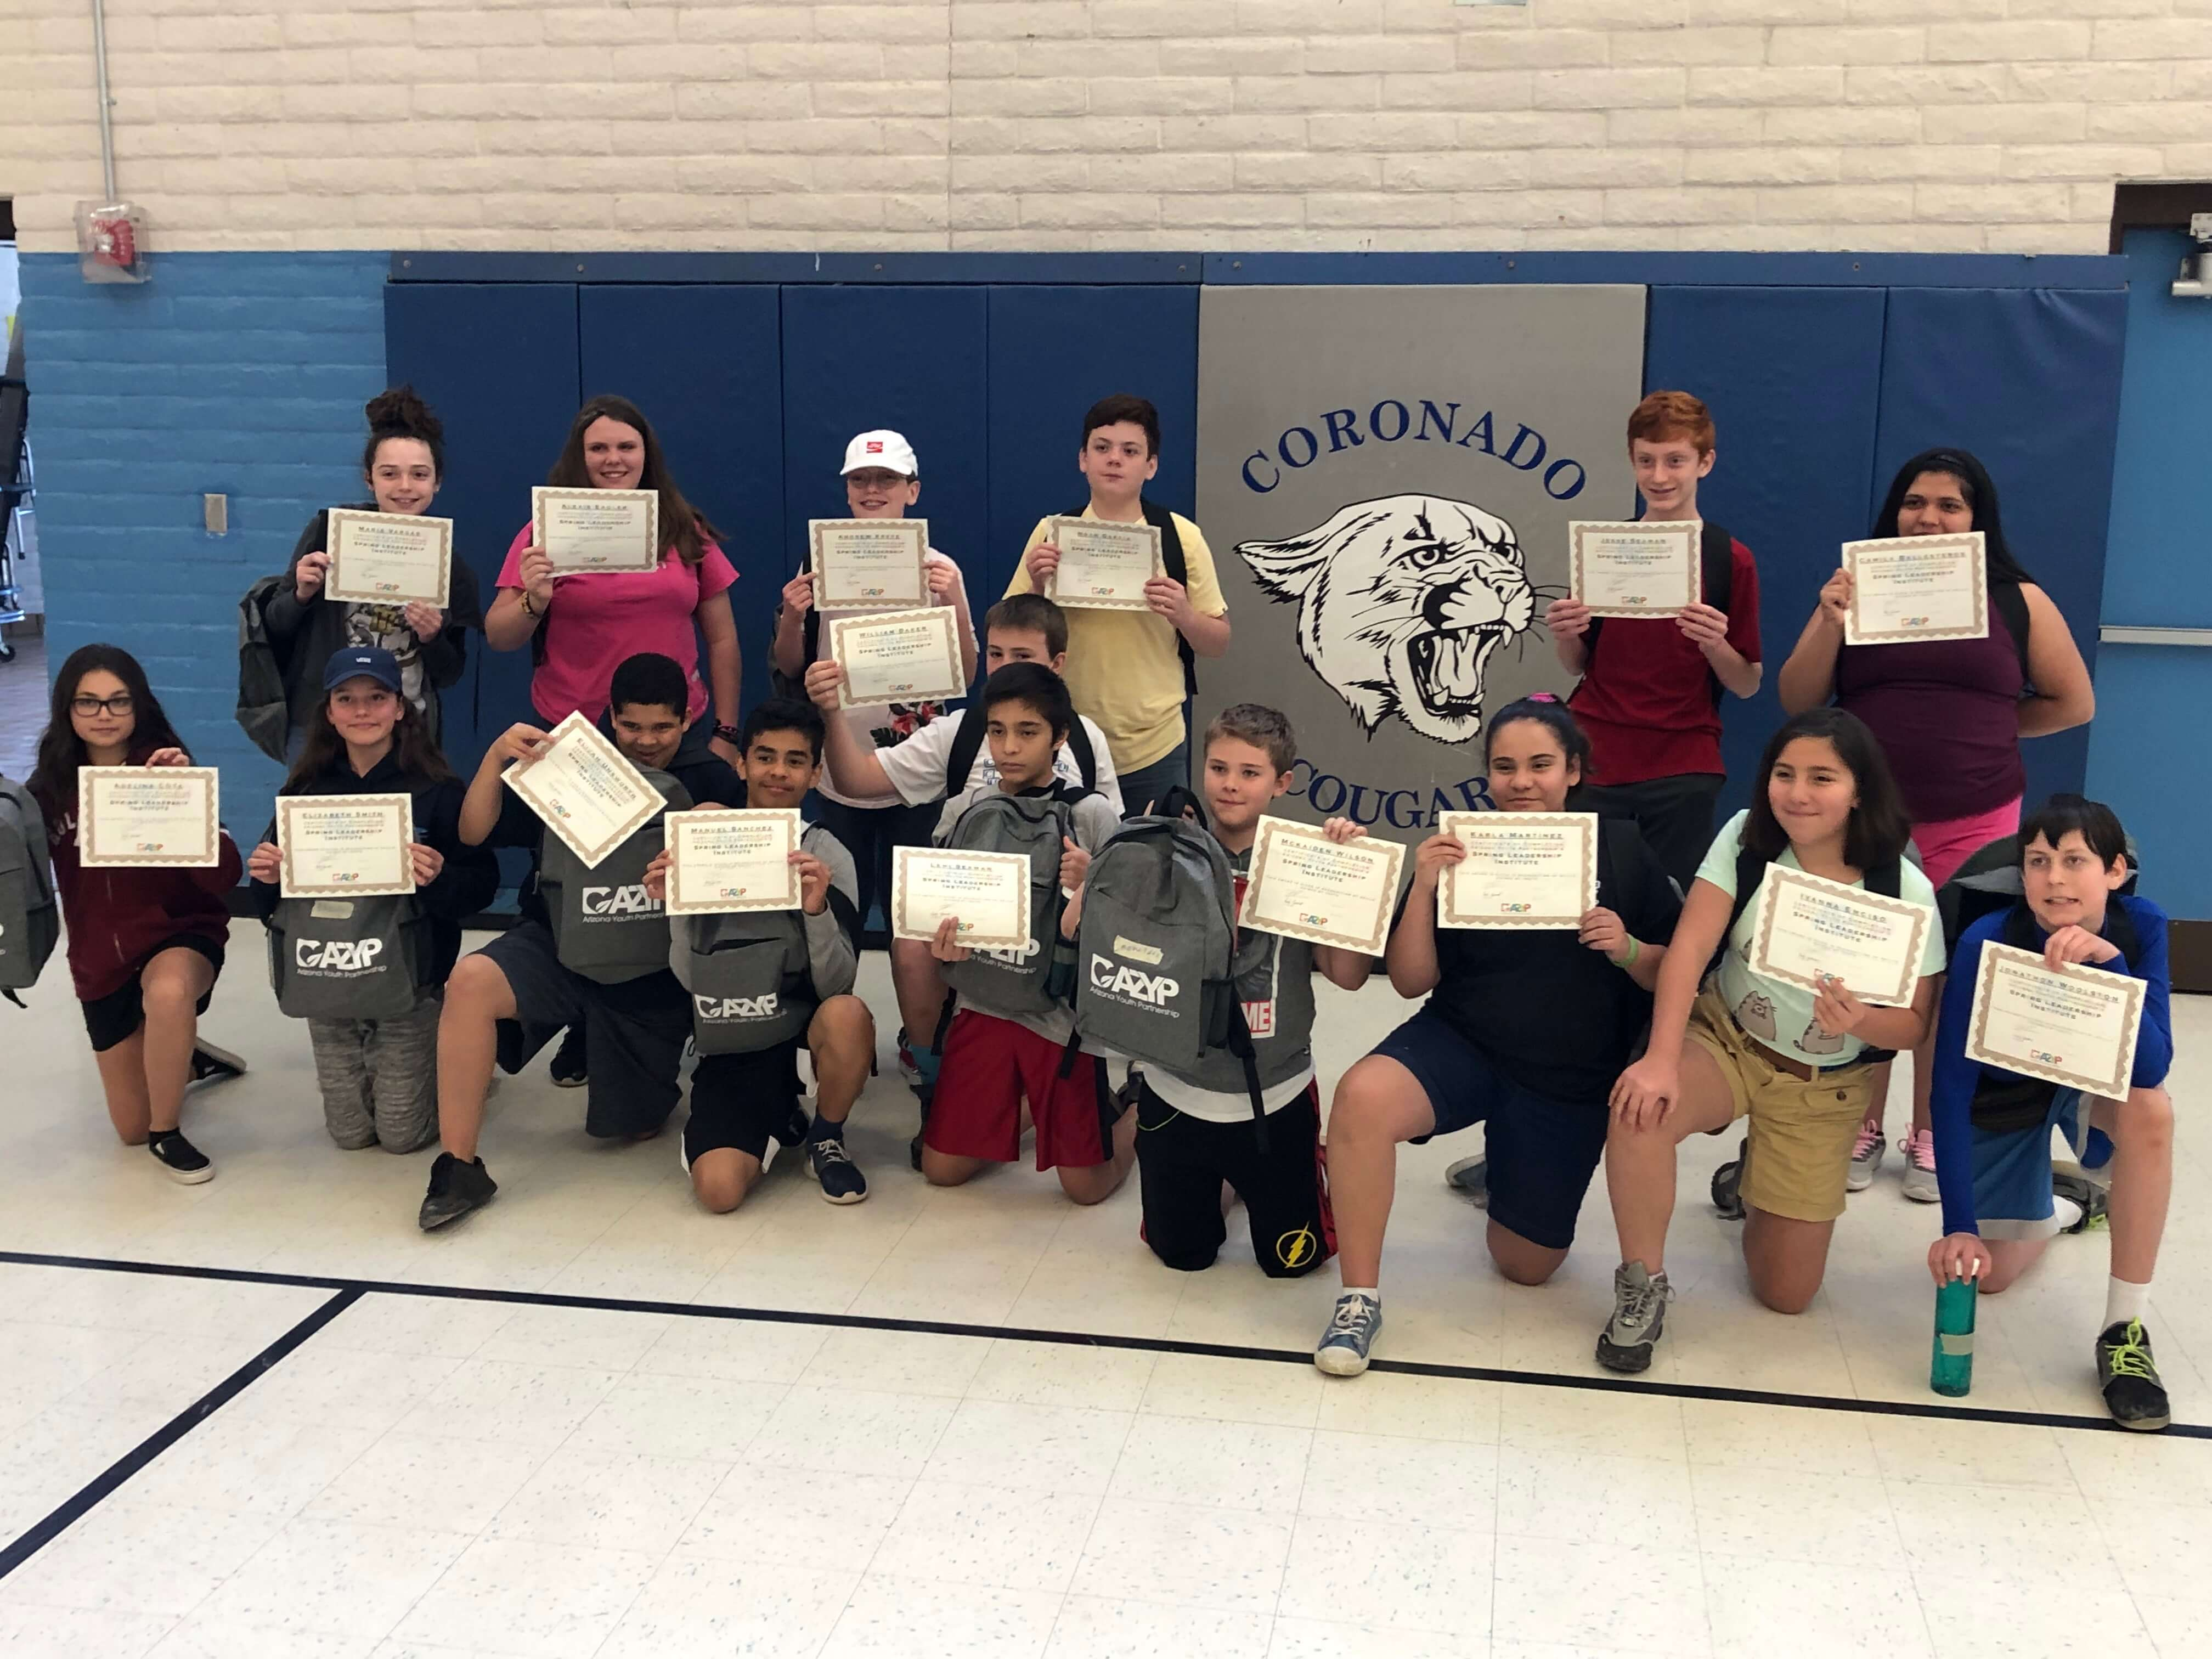 students holding up certificates